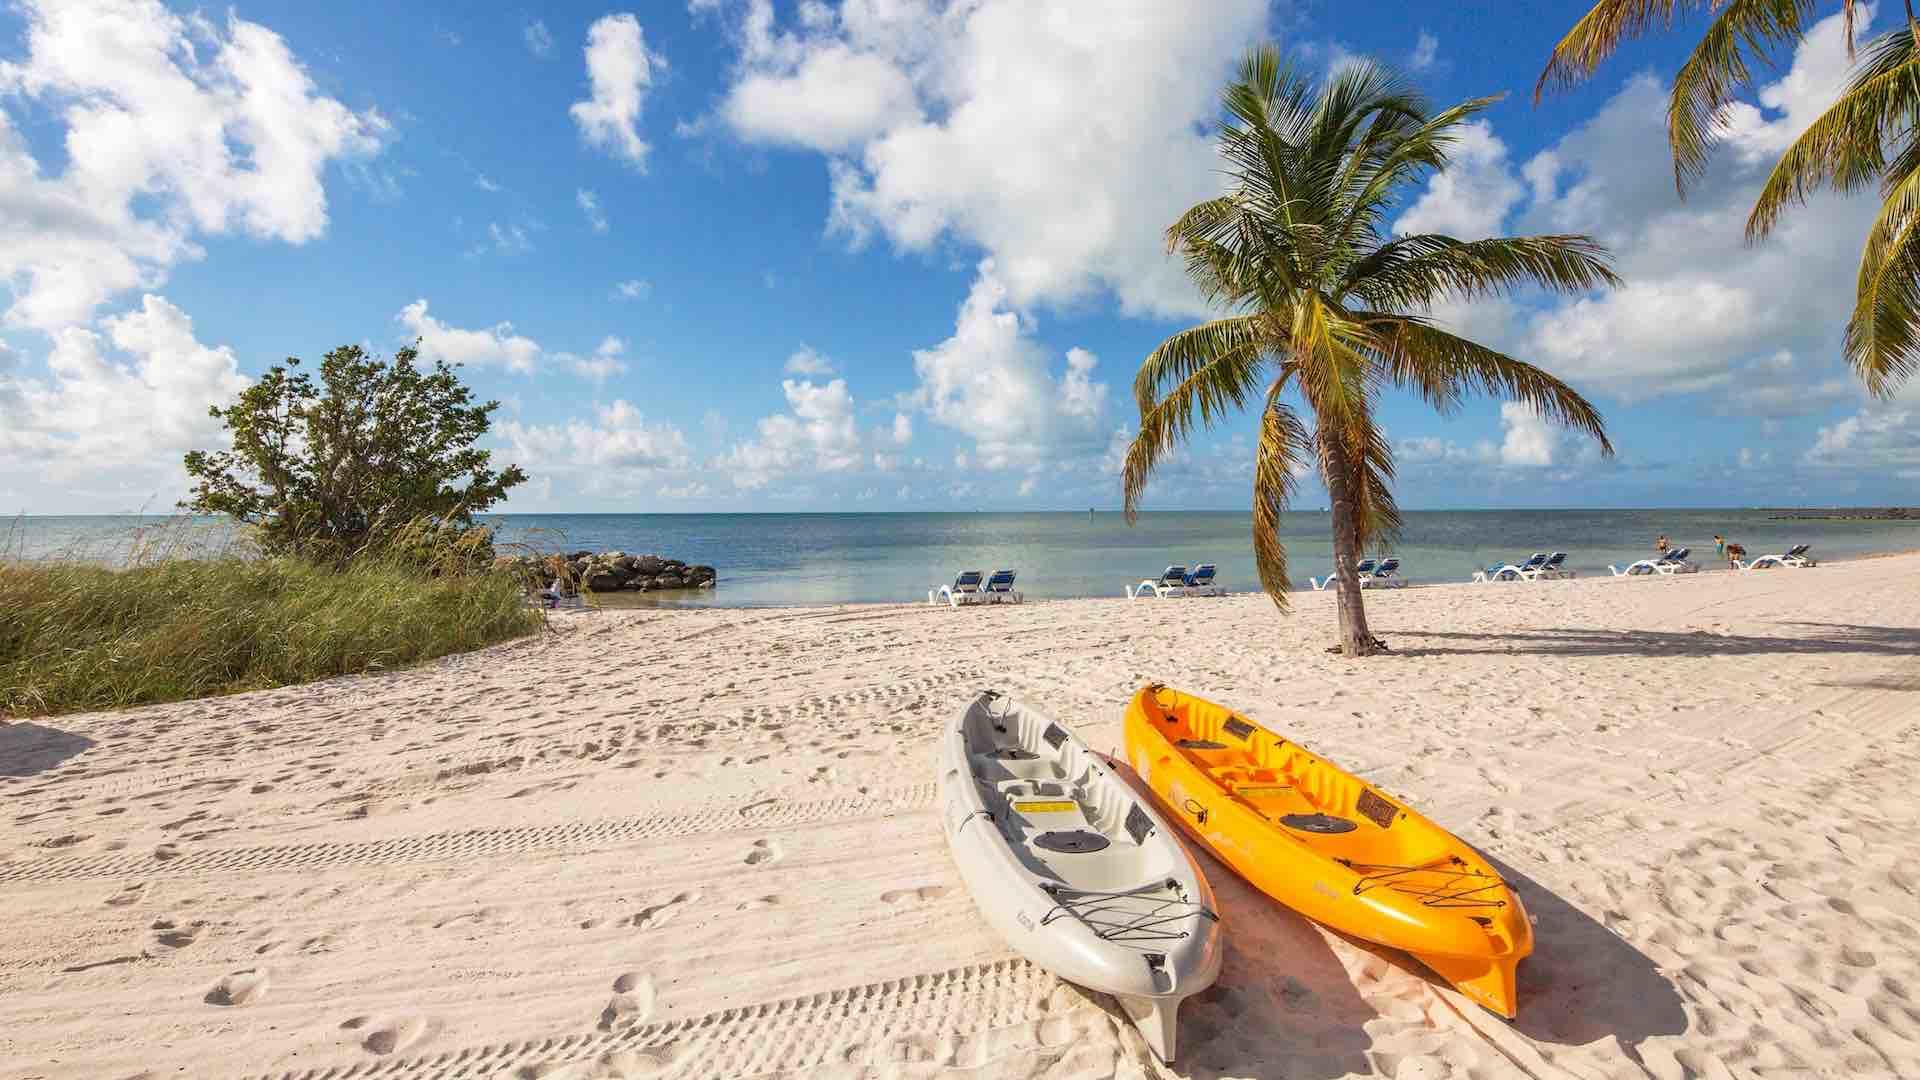 Be sure to get out and experience the beautiful waters of Key West...